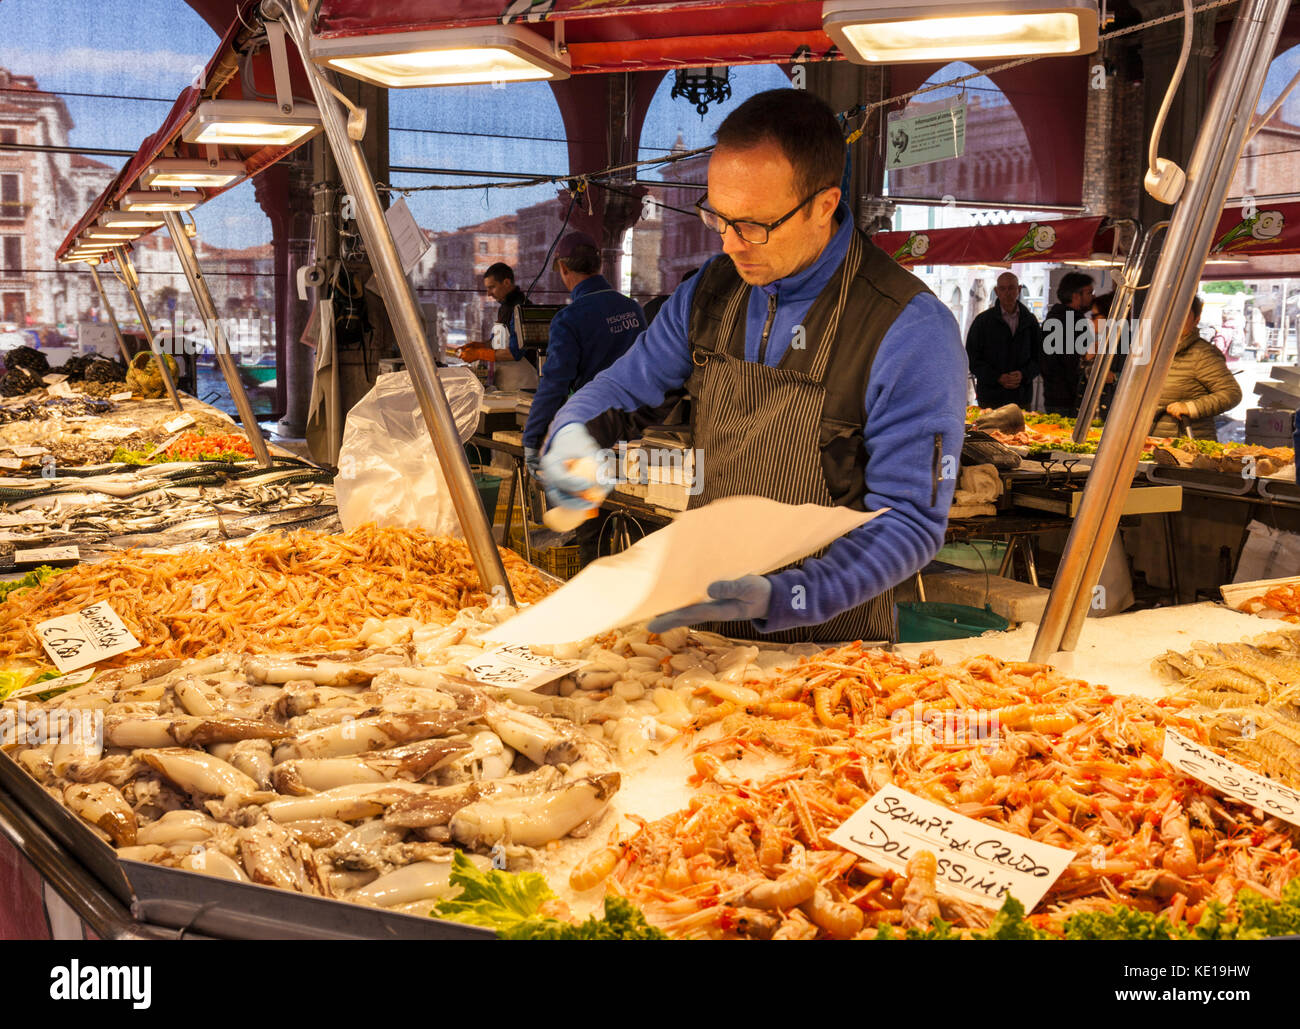 VENICE ITALY VENICE fishmonger selling fresh fish and seafood from the Market stalls selling fresh fish in the Rialto - Stock Image